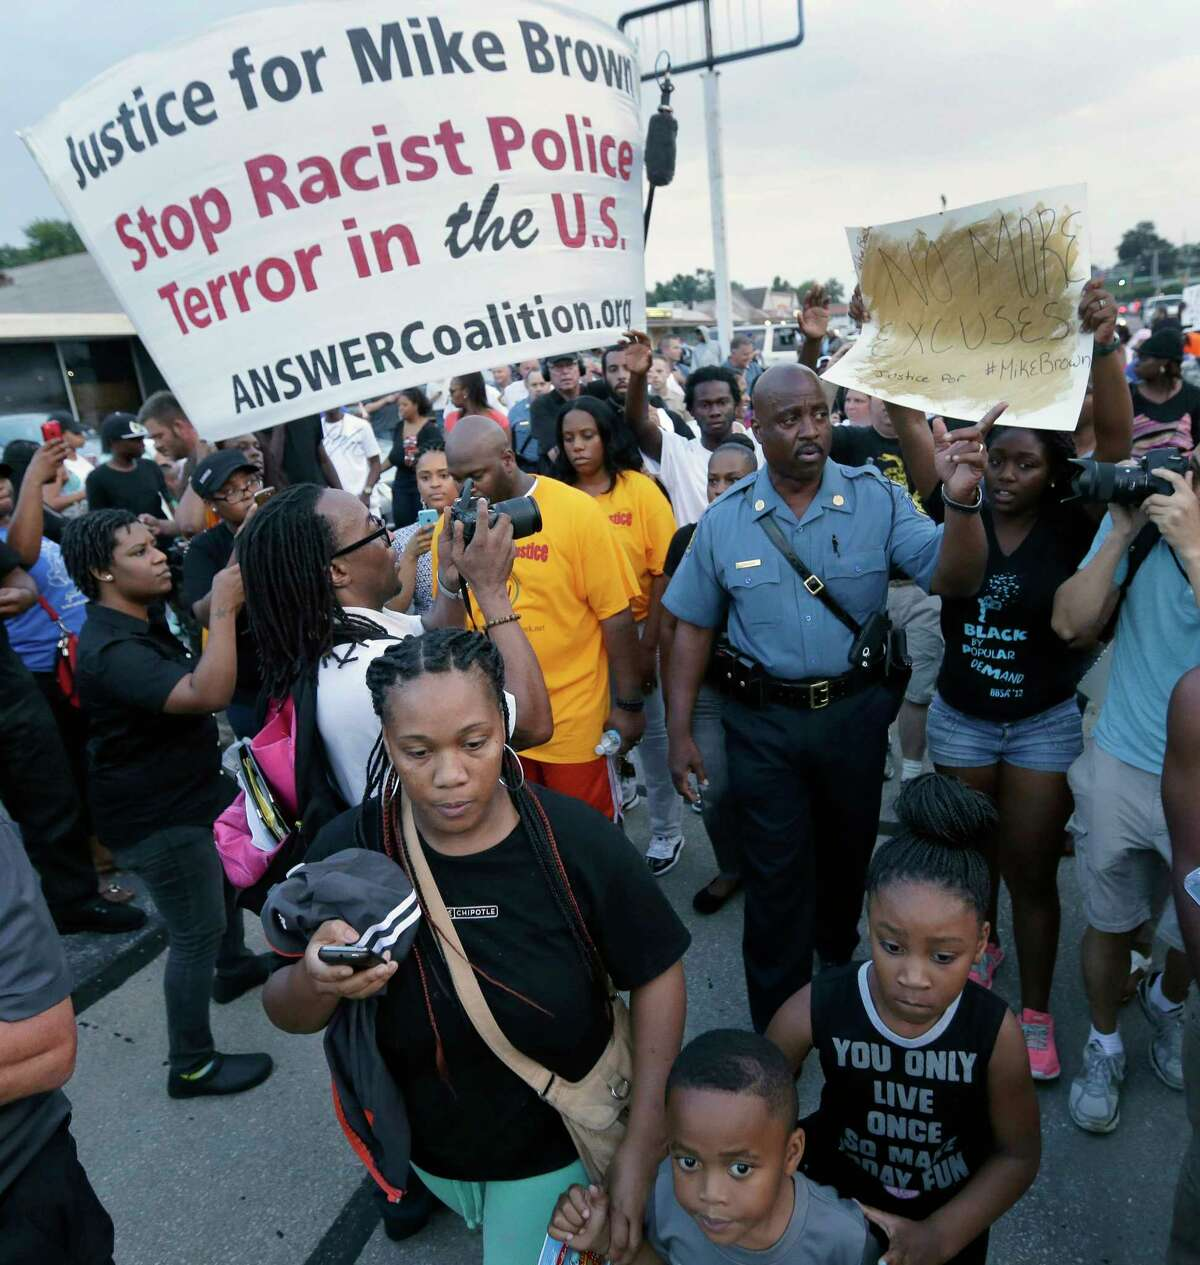 FILE - In this Aug, 16, 2014, file photo, Missouri Highway Patrol Capt. Ron Johnson walks among people protesting the police shooting death a week earlier of Michael Brown in Ferguson, Mo. (AP Photo/Charlie Riedel, File)